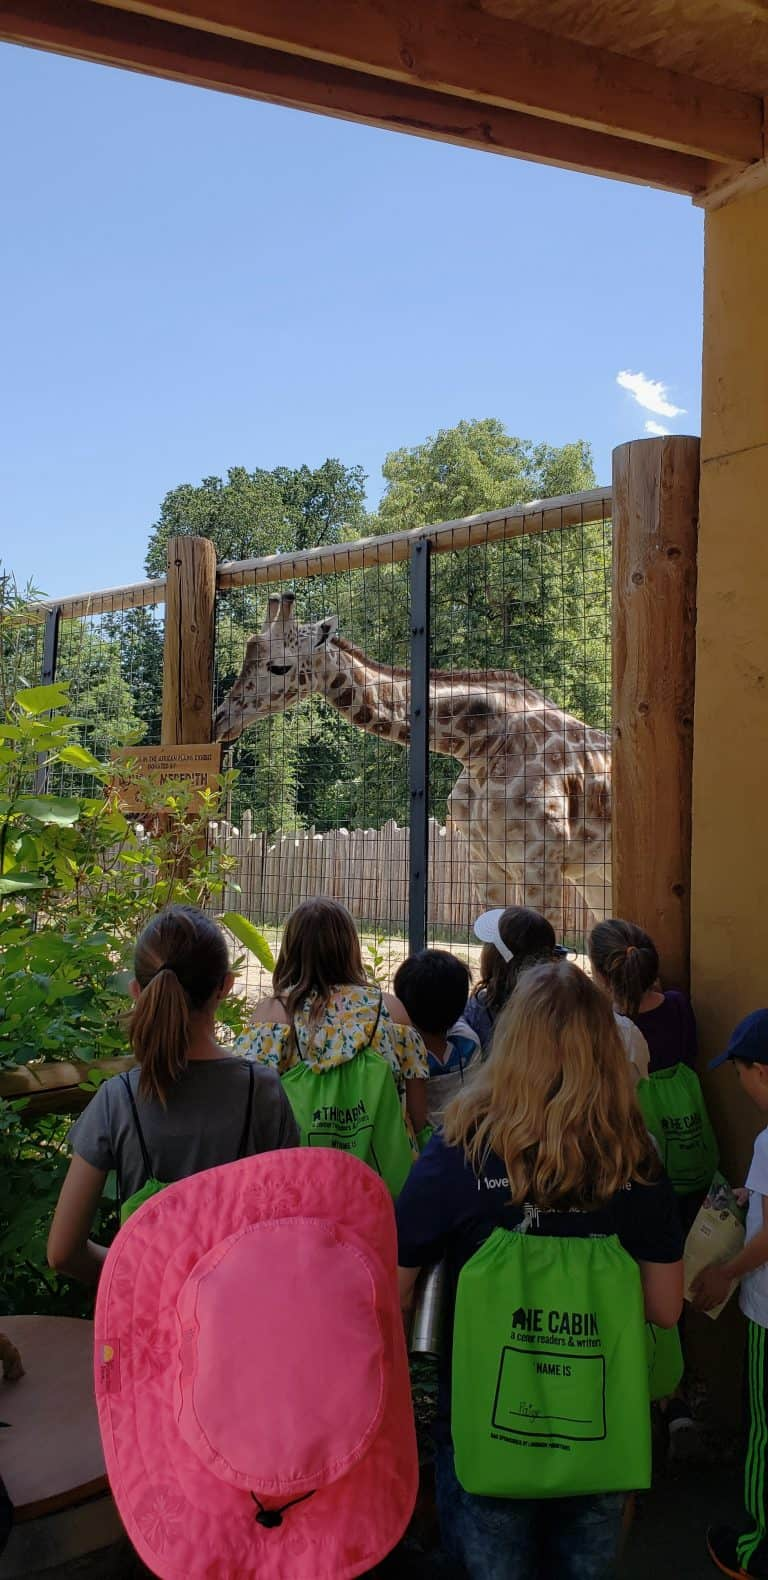 Zoo Boise - one of the fun things to do in Idaho